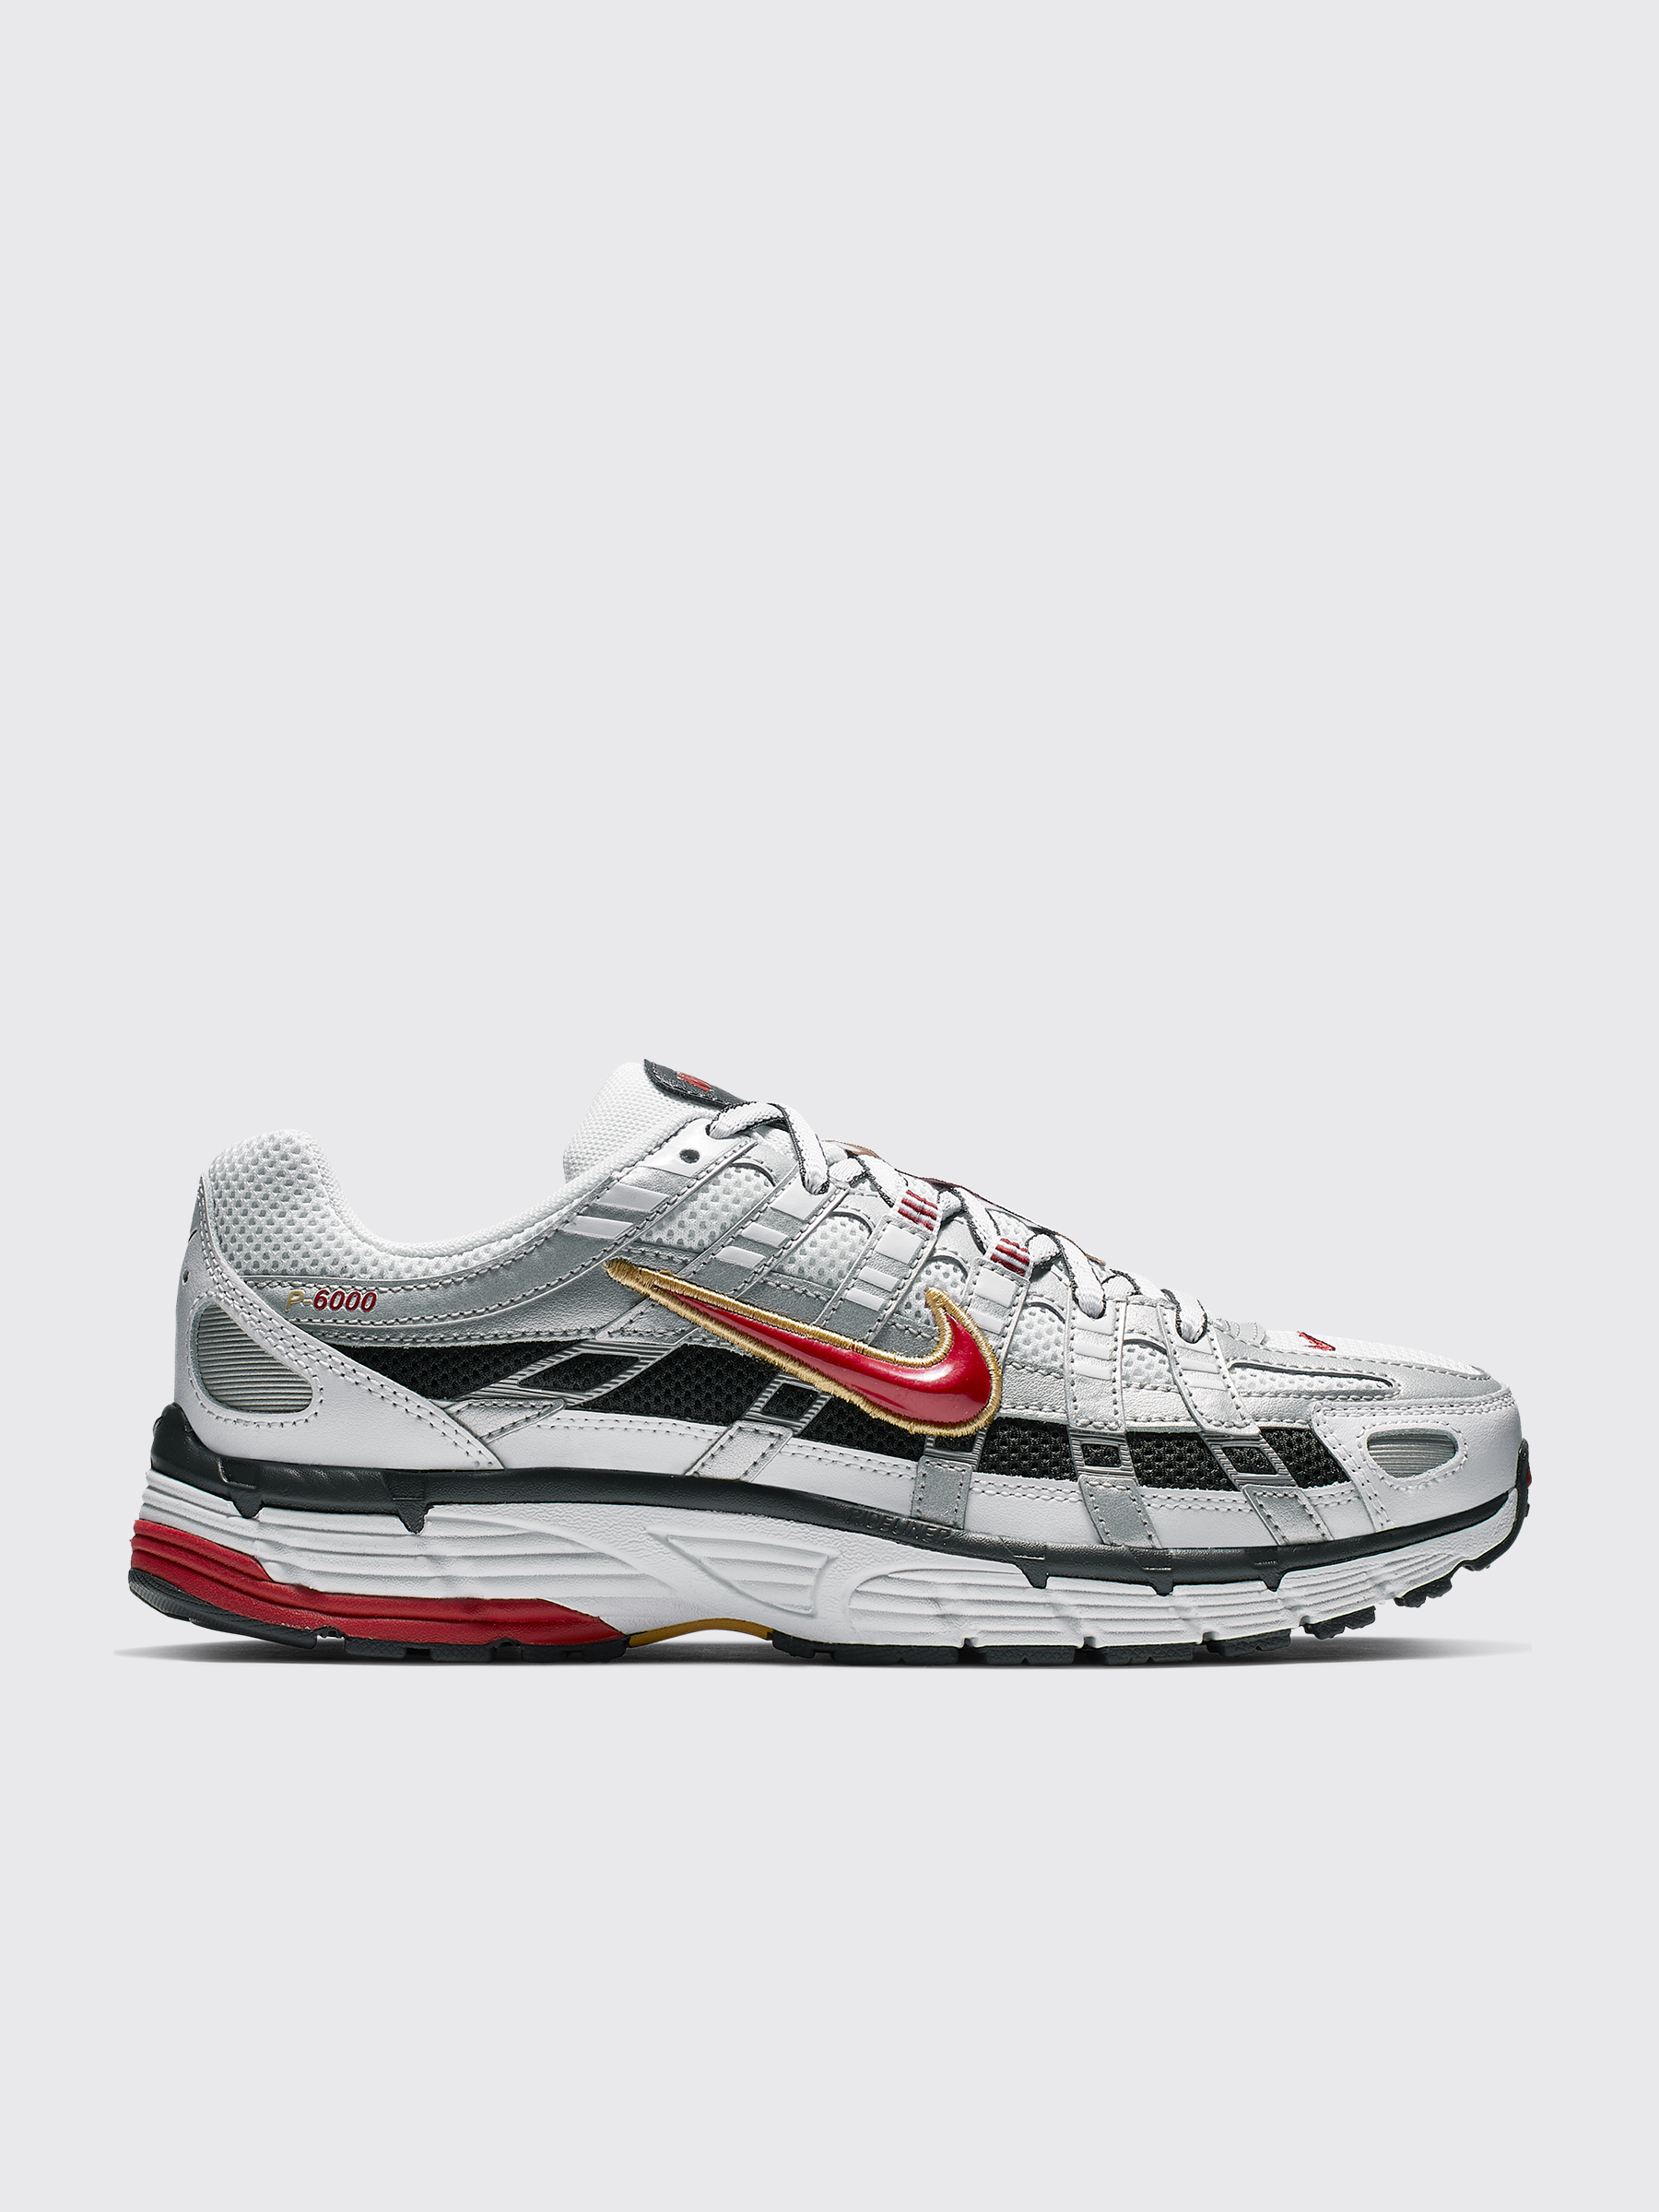 reputable site 12e93 73914 Très Bien - Nike P-6000 White   Varsity Red